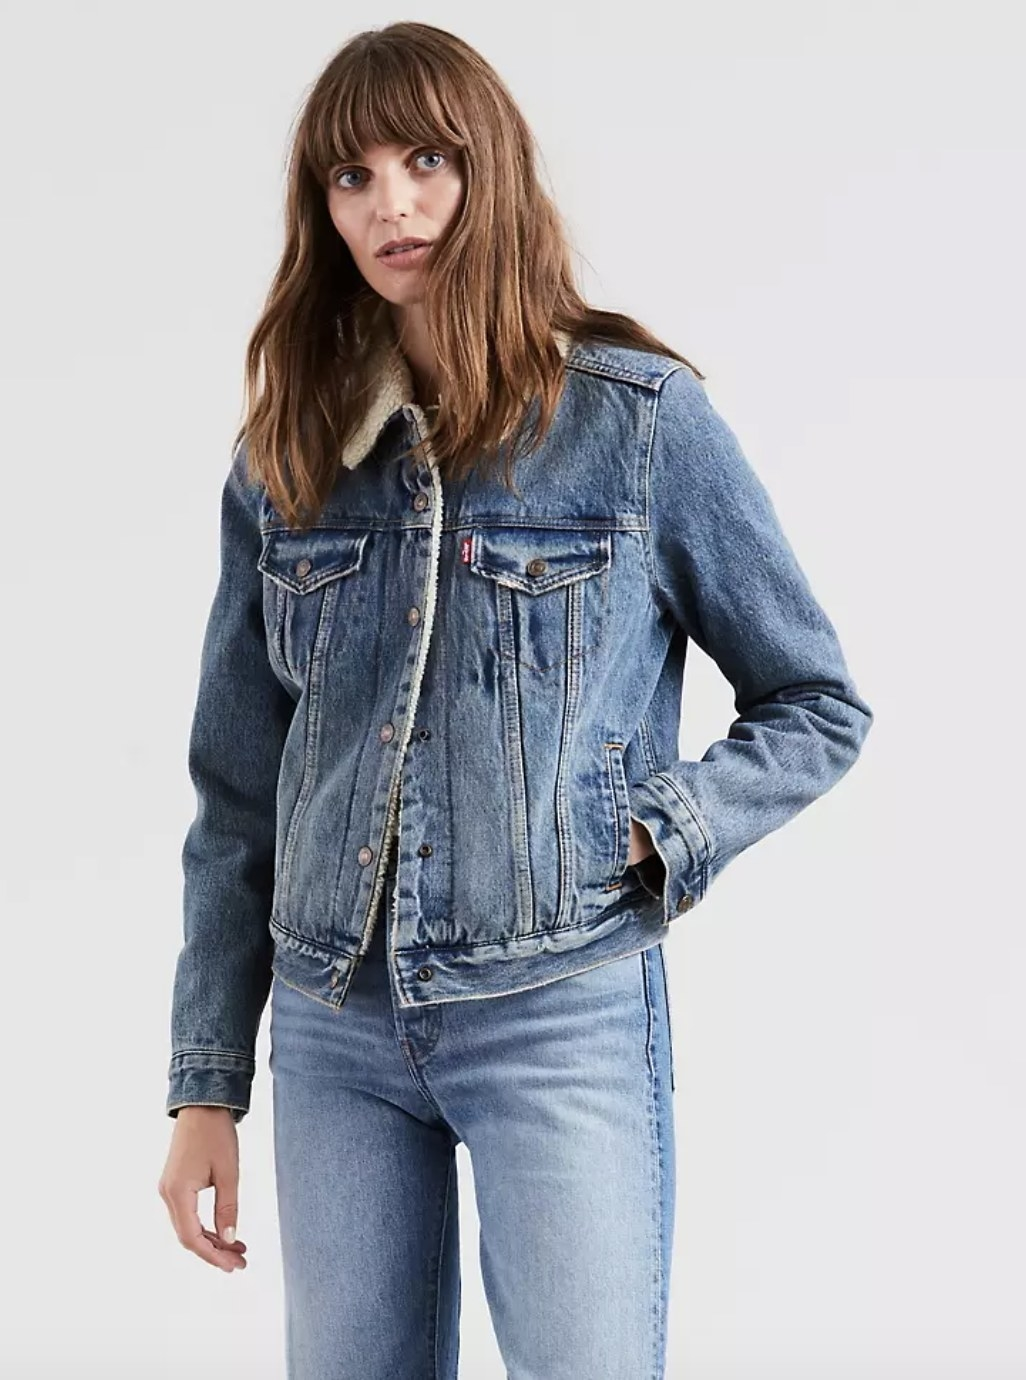 model wearing the jacket with denim jeans